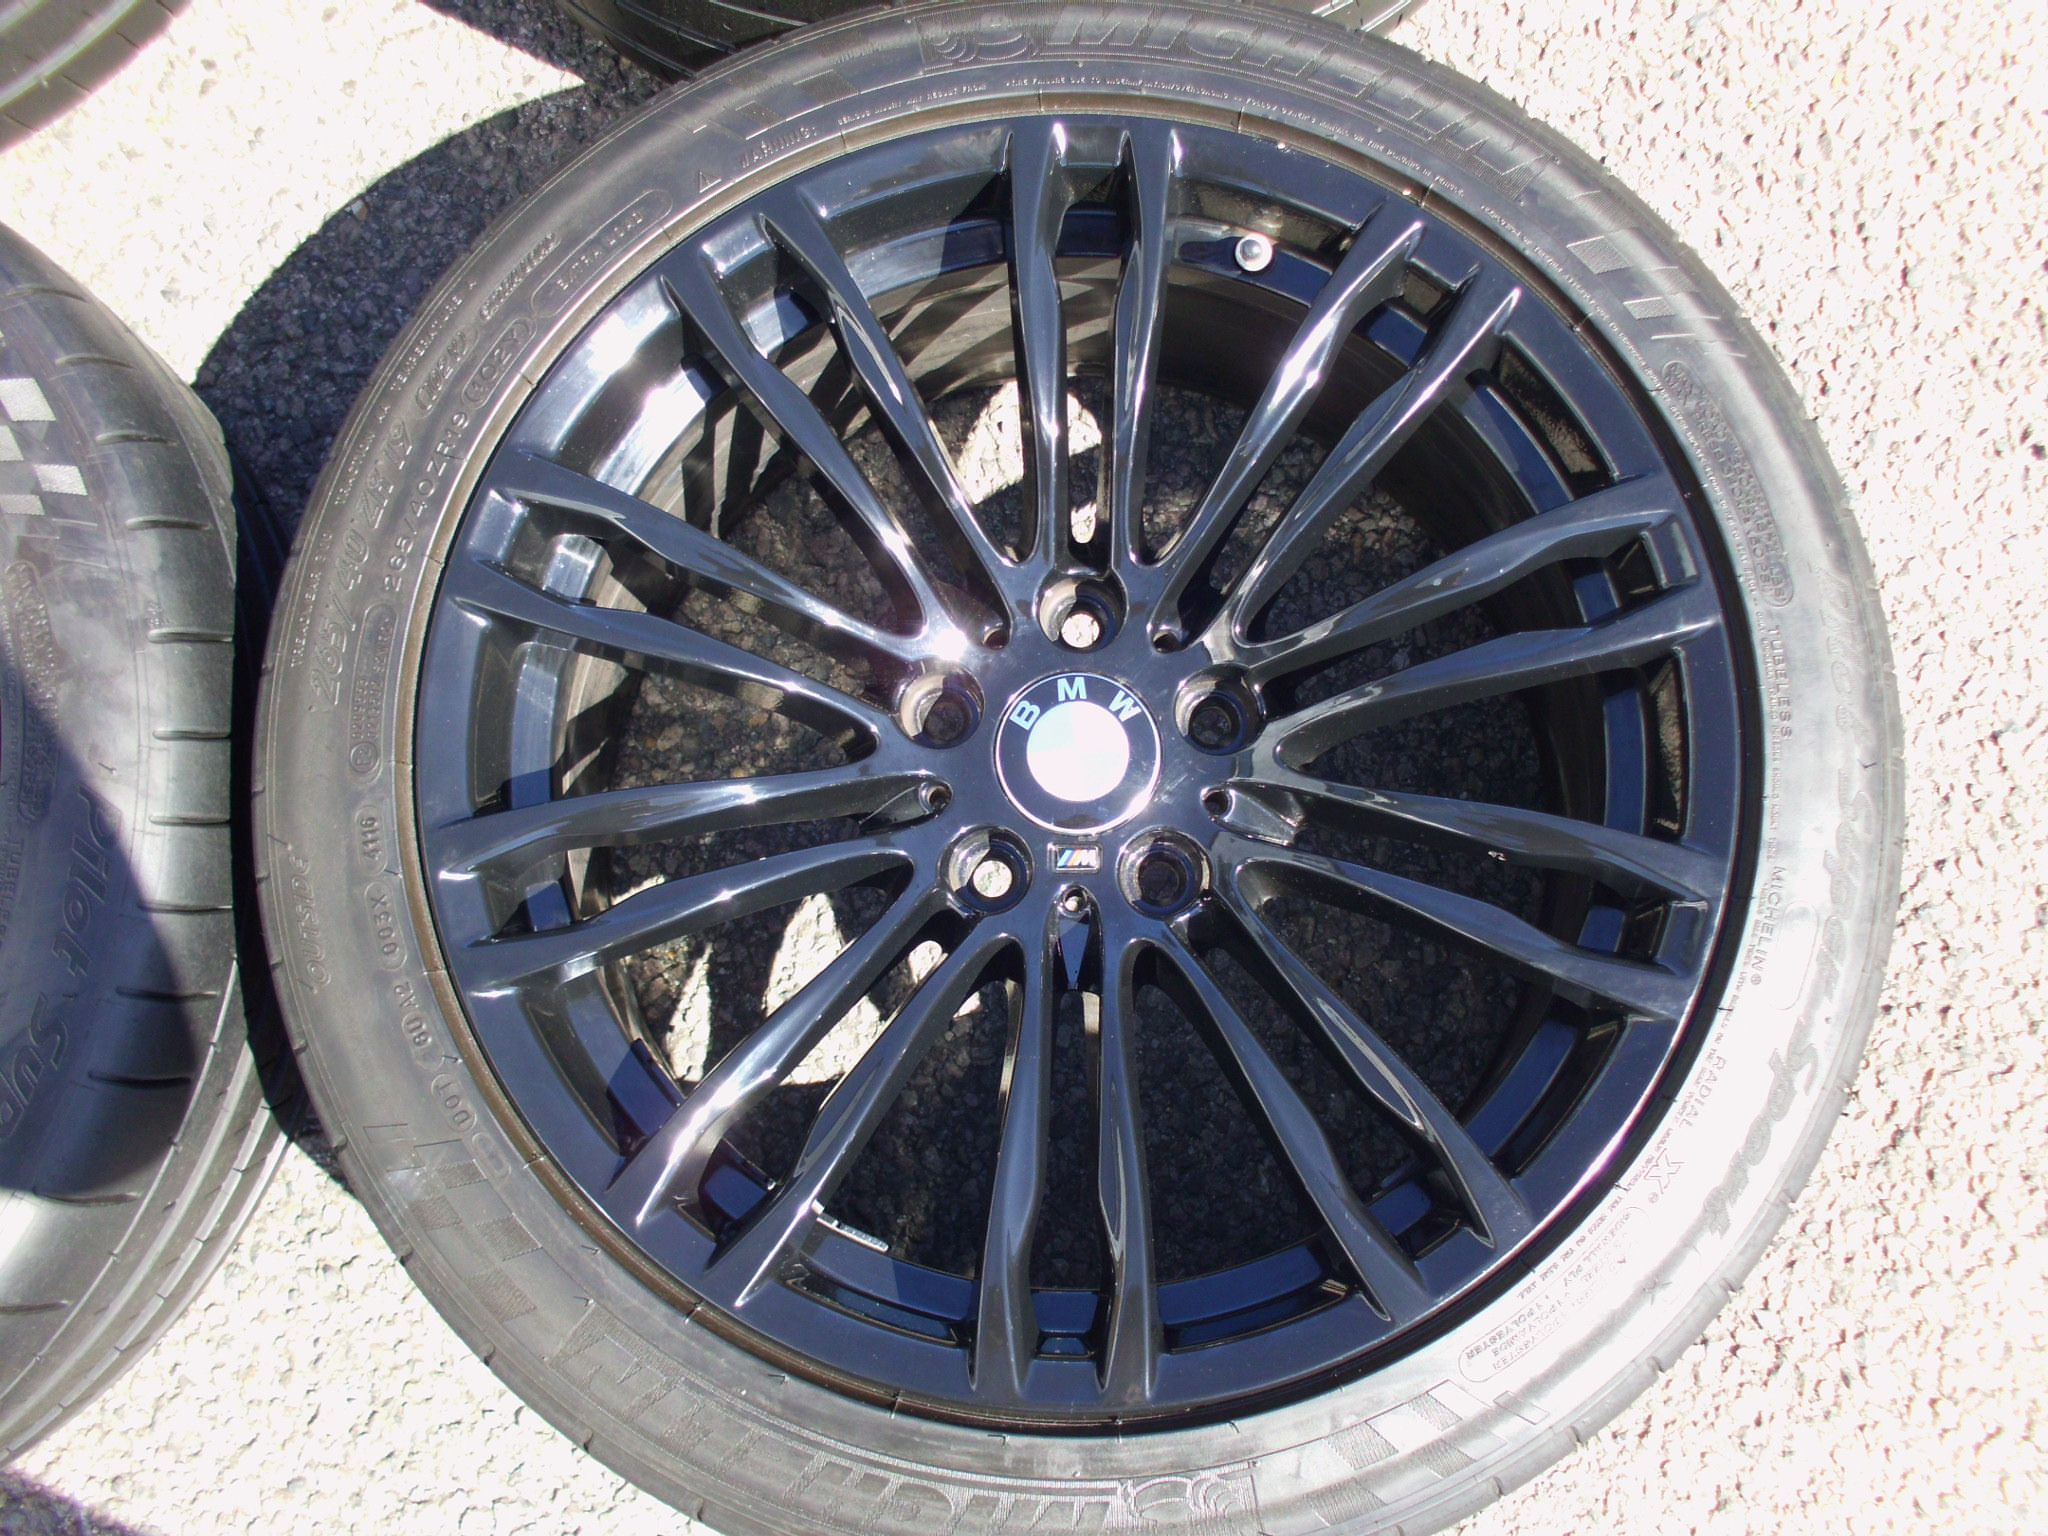 "USED 19"" GENUINE STYLE 345 M F10 M5 ALLOYS, CLEAN CONDITION WITH WIDE REAR INC VERY GOOD MICHELIN TYRES + TPMS"